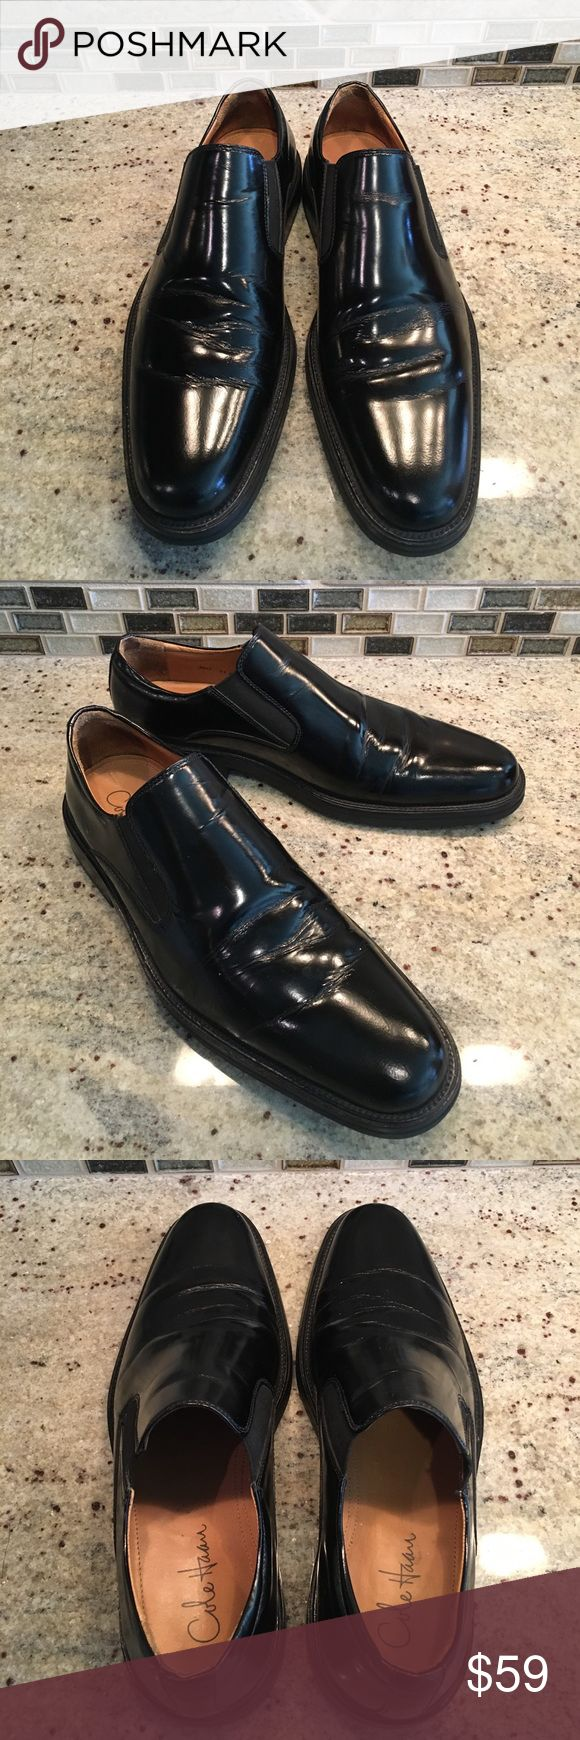 Cole Haan Mens Slip On Loafers Leather Dress Shoes Cole Haan Mens Slip On Loafers Leather Dress Shoes Black Size 11.  Water proof.  Great condition. Barely worn. Cole Haan Shoes Loafers & Slip-Ons